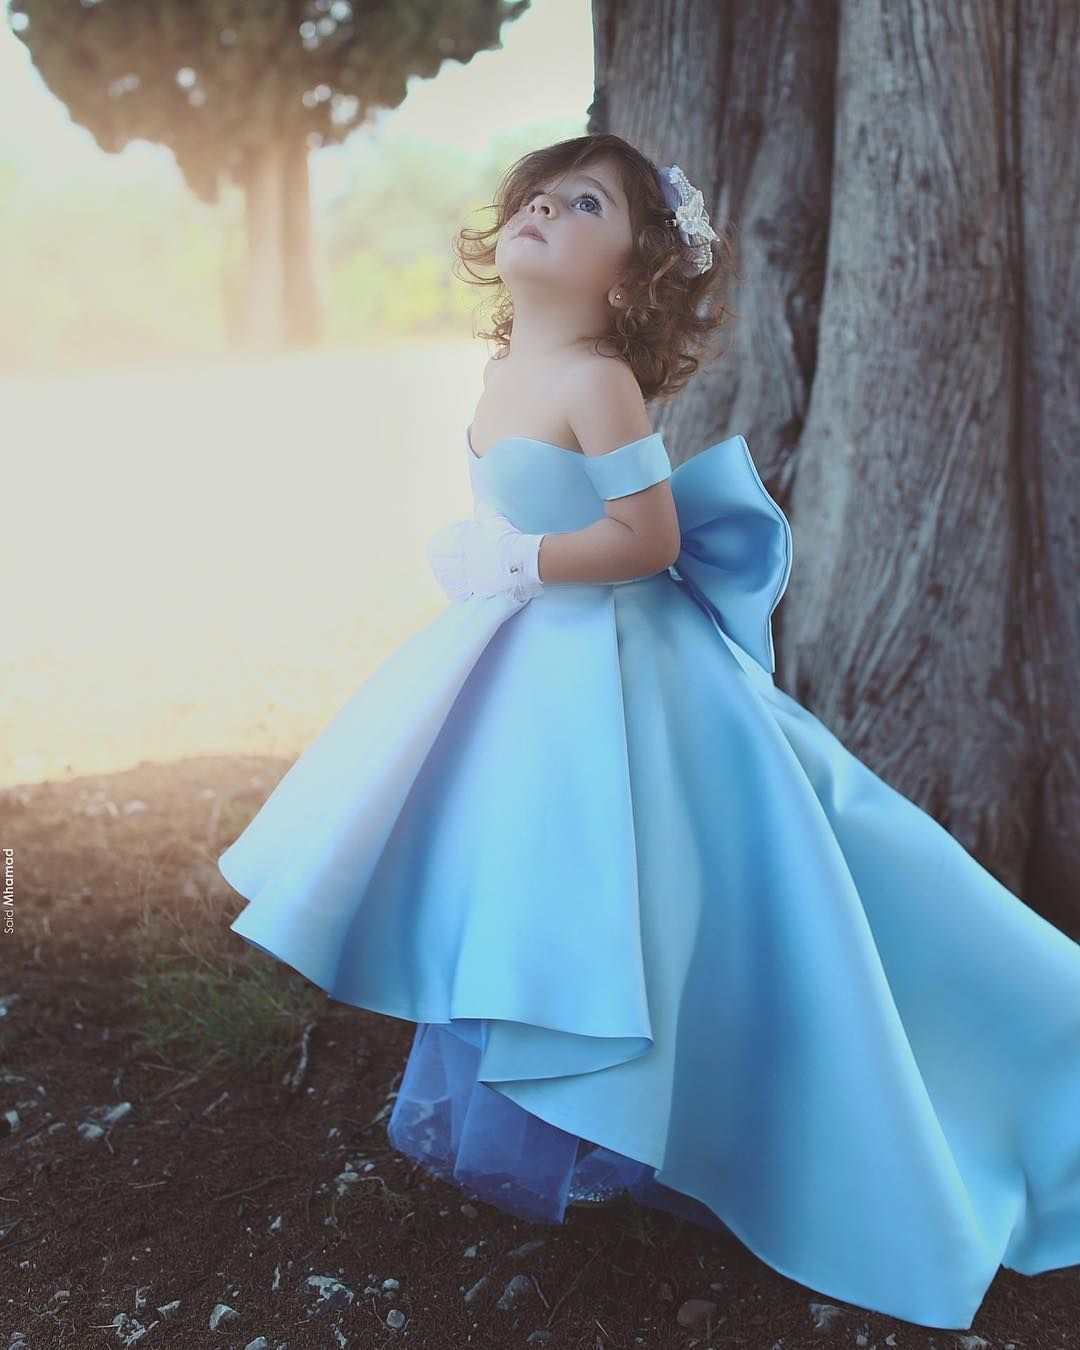 c7d6014dfd6 Flower Girl Dresses Blue Ball Gown Child Evening Party Gowns with ...